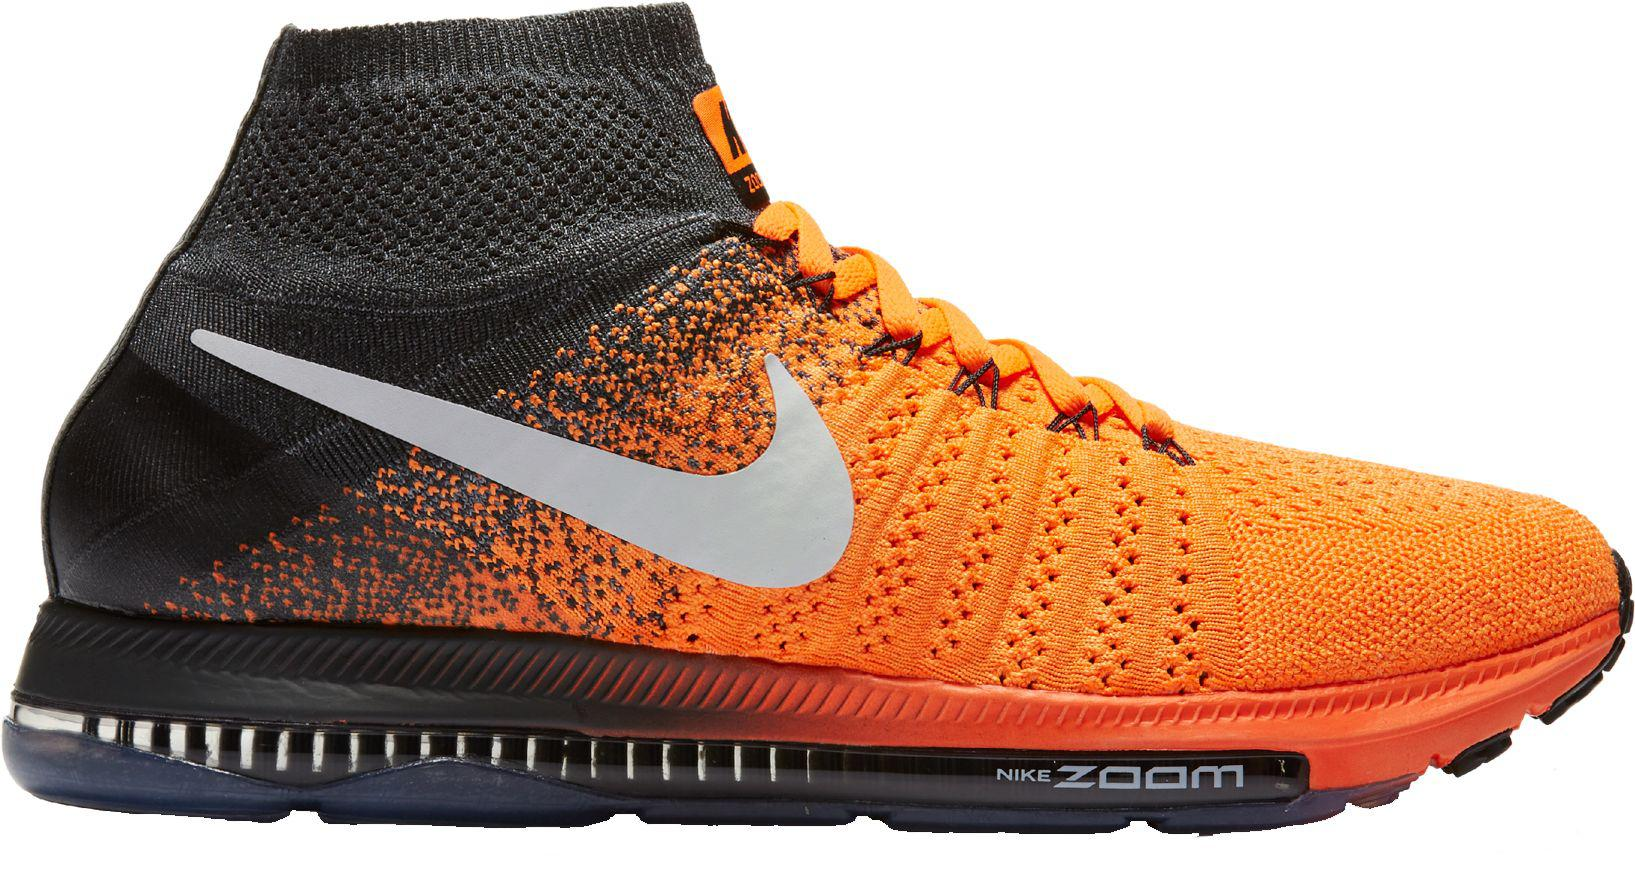 dca4c908ed328 Lyst - Nike Zoom All Out Flyknit Running Shoes in Orange for Men